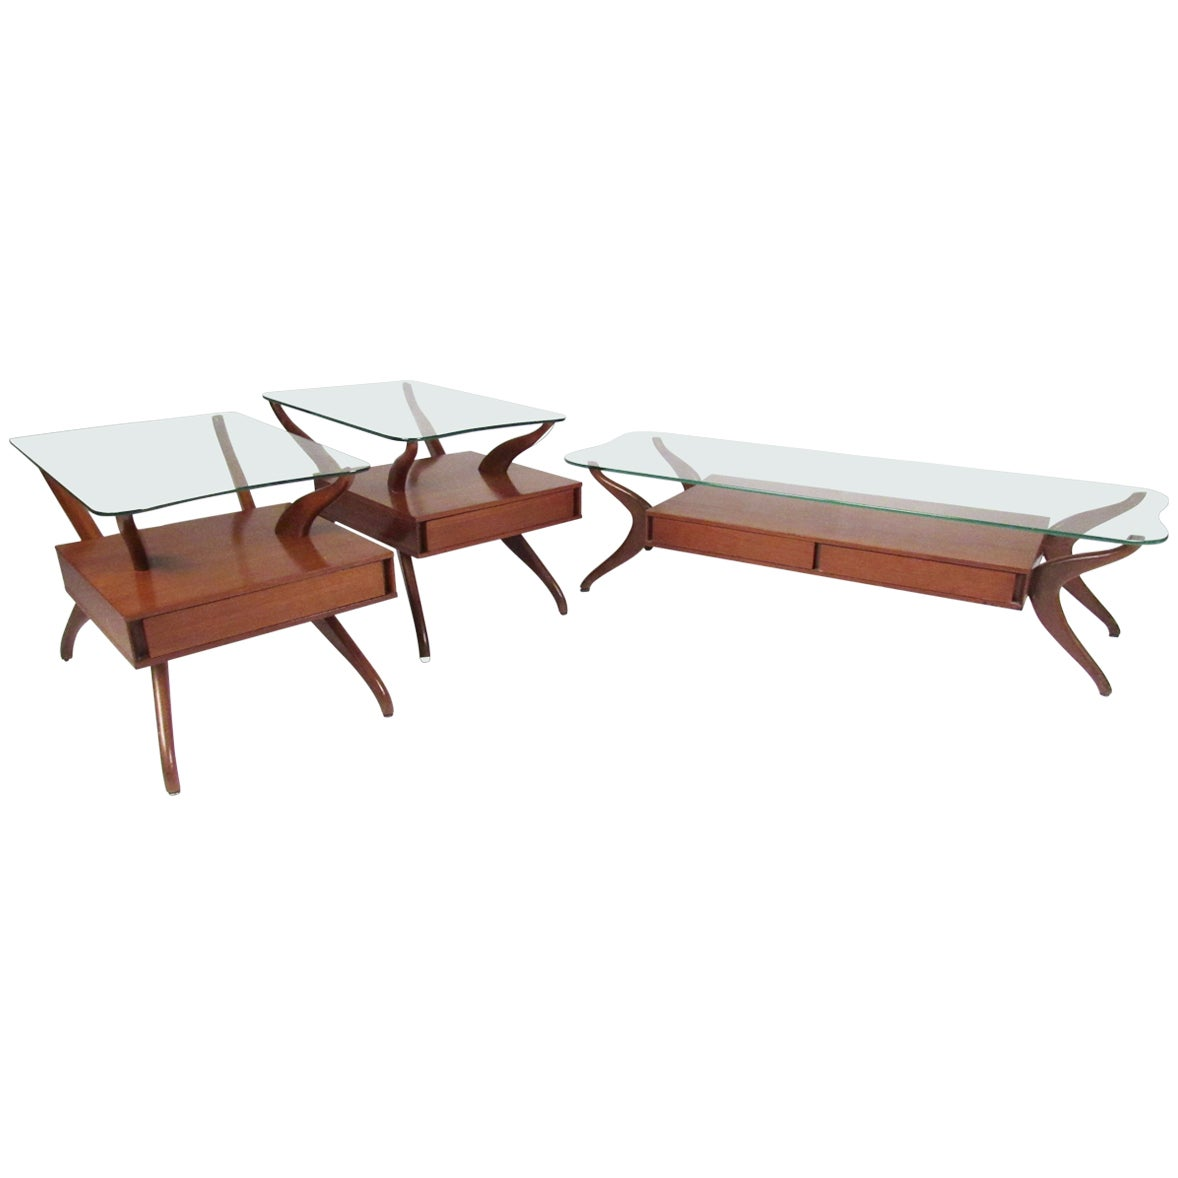 Sculptural Italian Modern Coffee Table Set after Ico Parisi